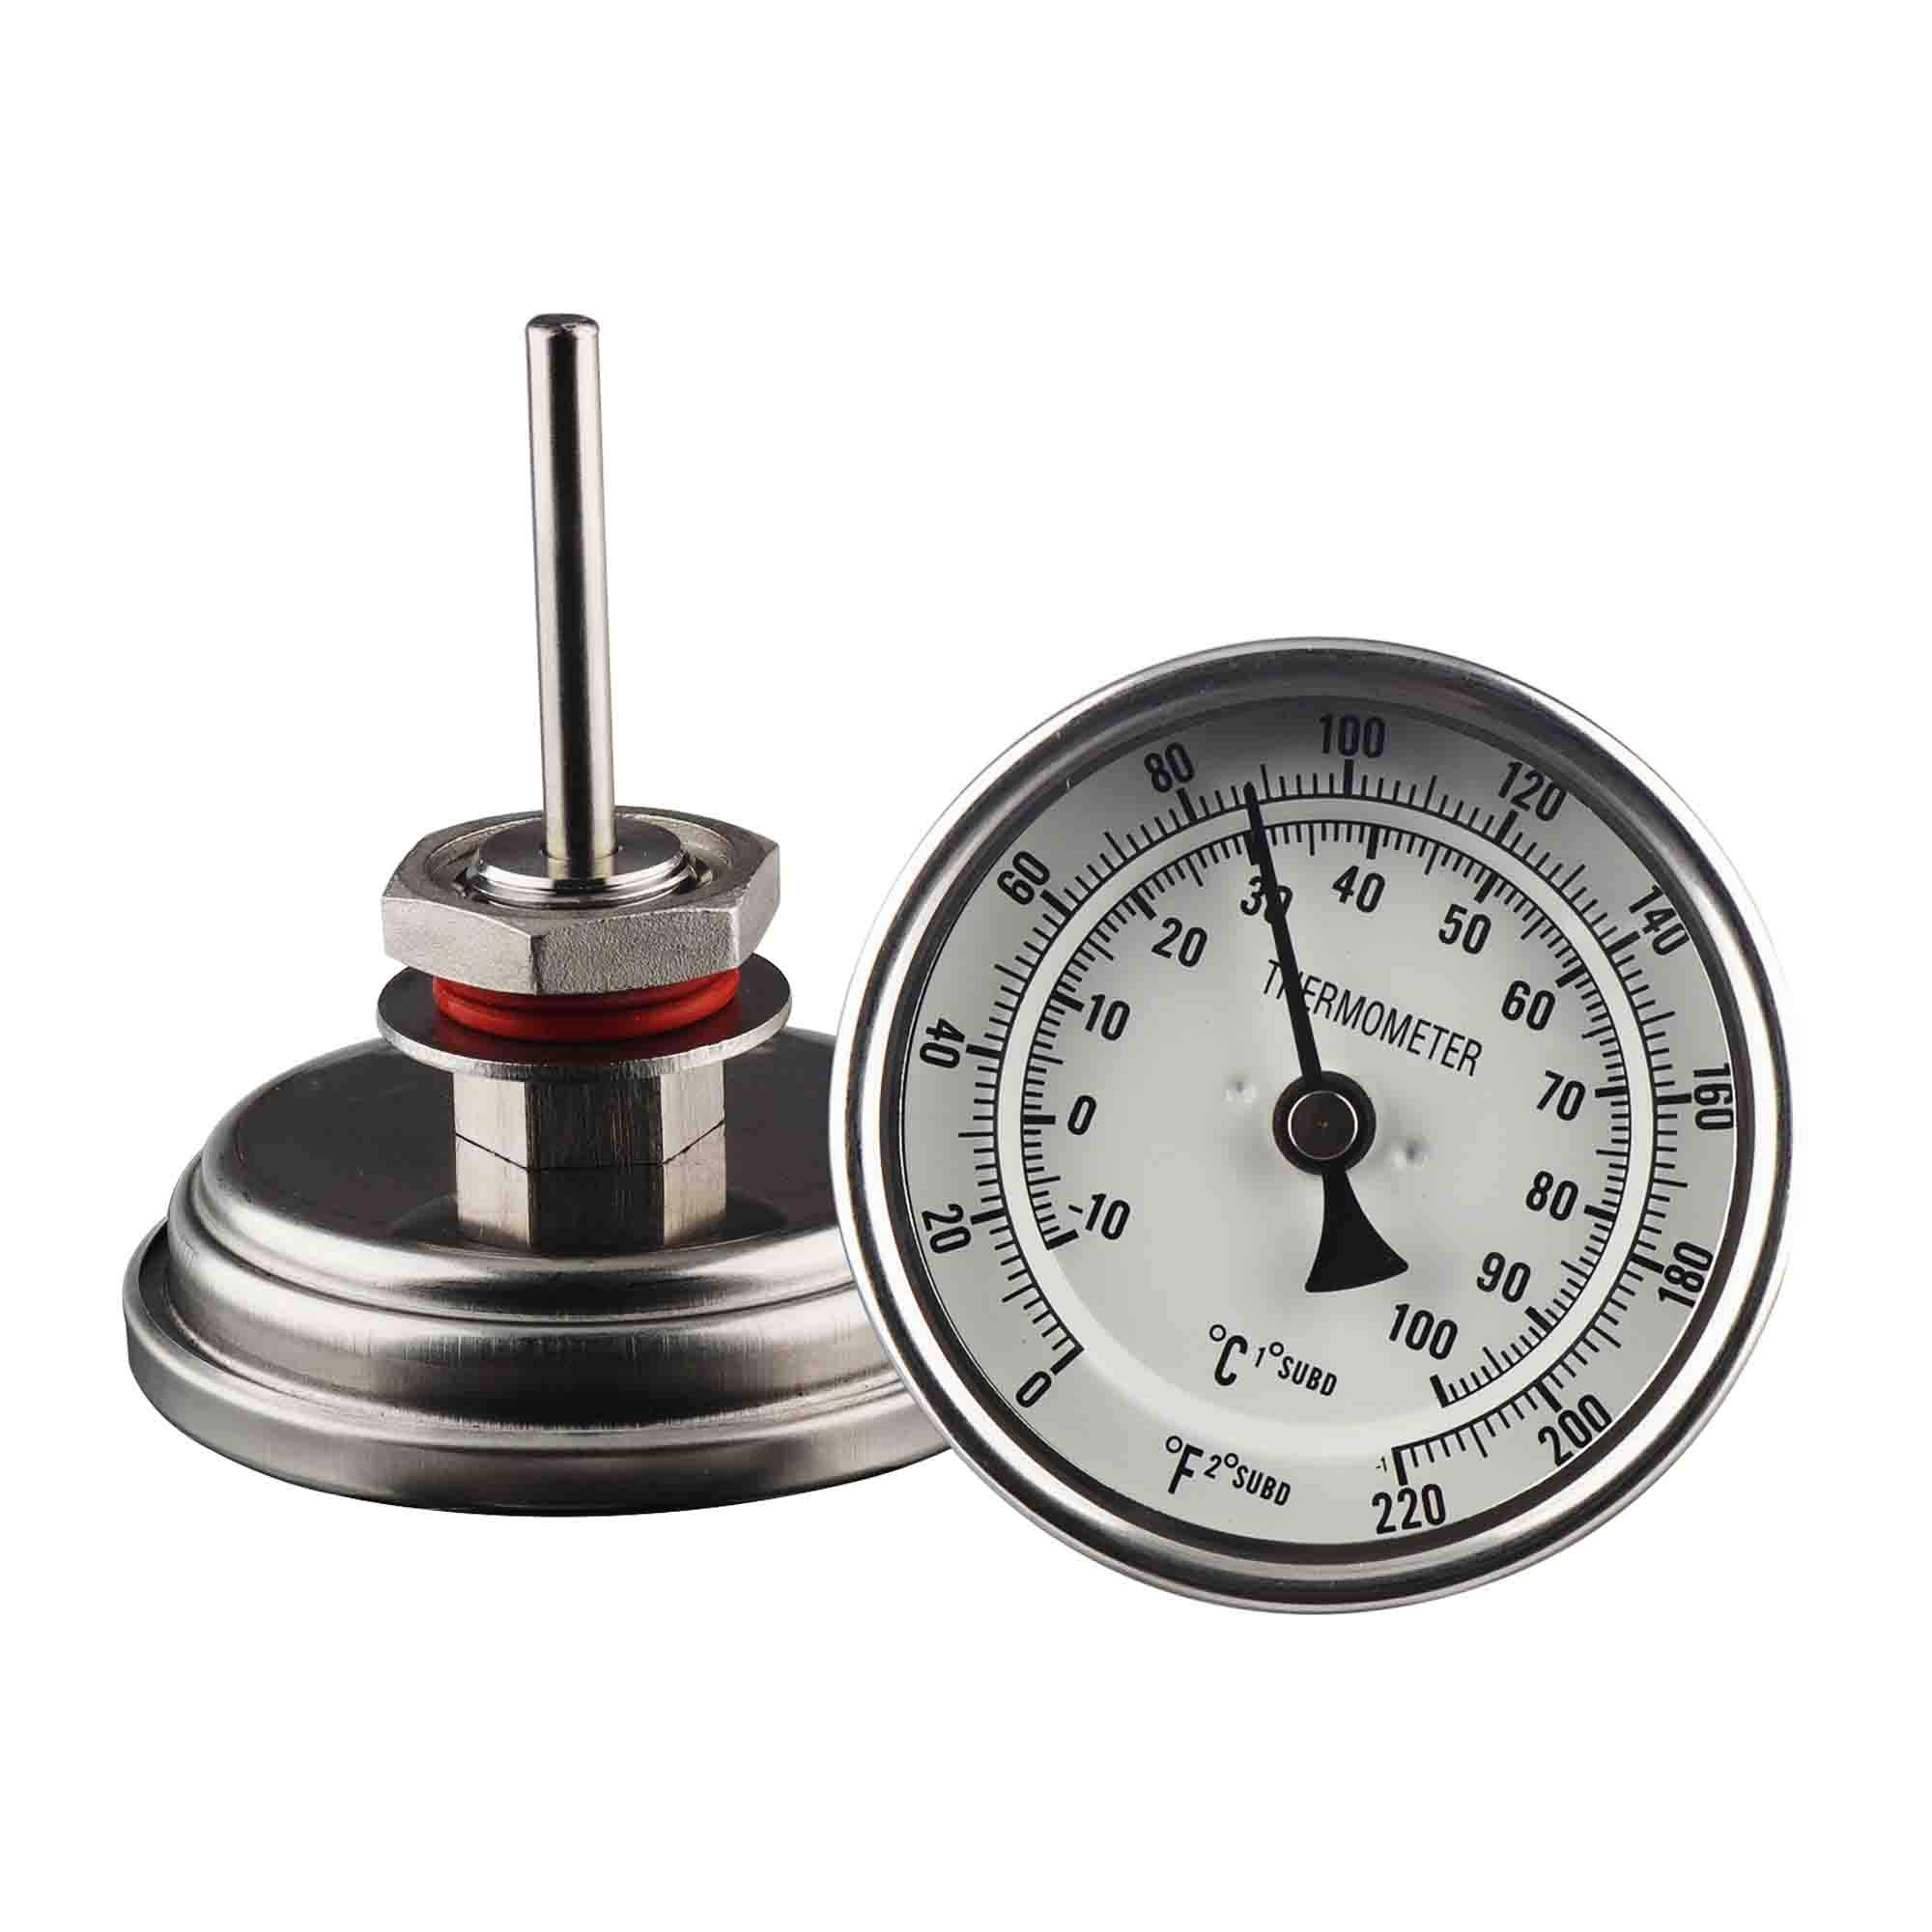 OneBom Brewing Dial Thermometer, 1/2 NPT Stainless Steel, Quick Read with Dual Scale 0-220ºF & -10-100ºC (3'' Face with 2'' Probe for Brew Pot)